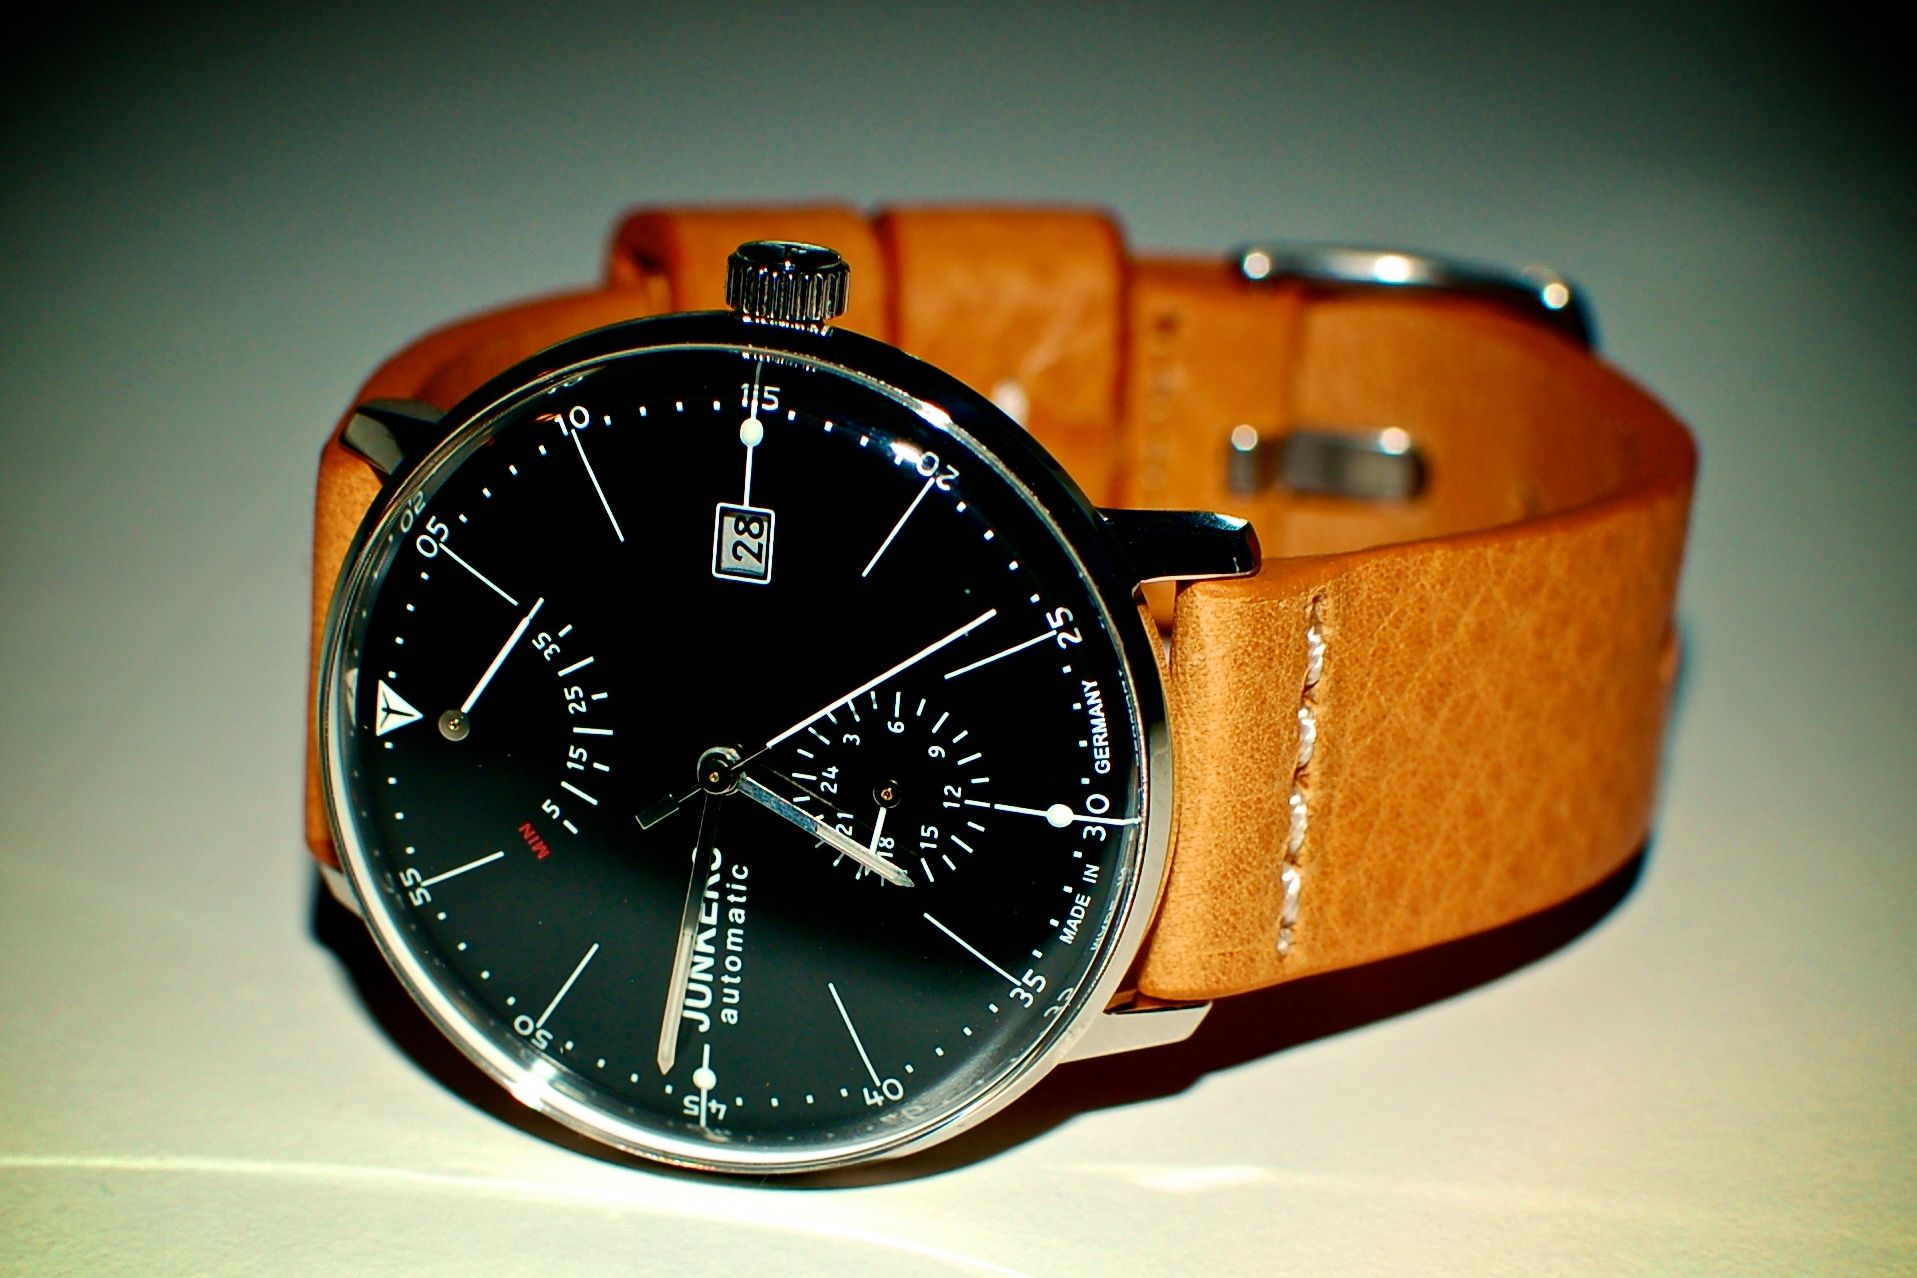 Junkers Bauhaus automatic watch with Meyhofer leather